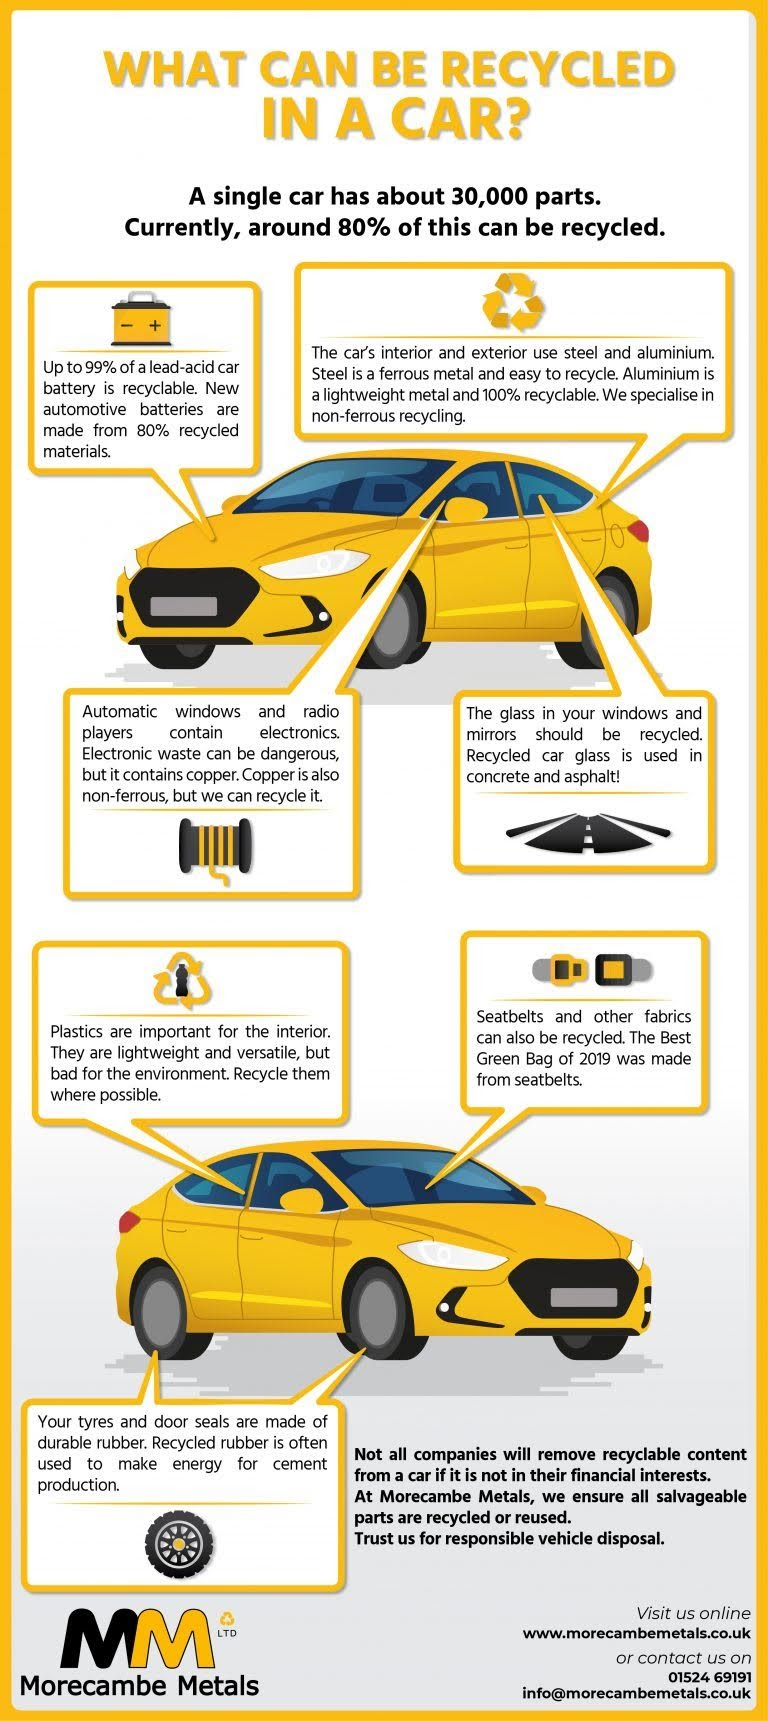 What Can Be Recycled in a Car? #infographic